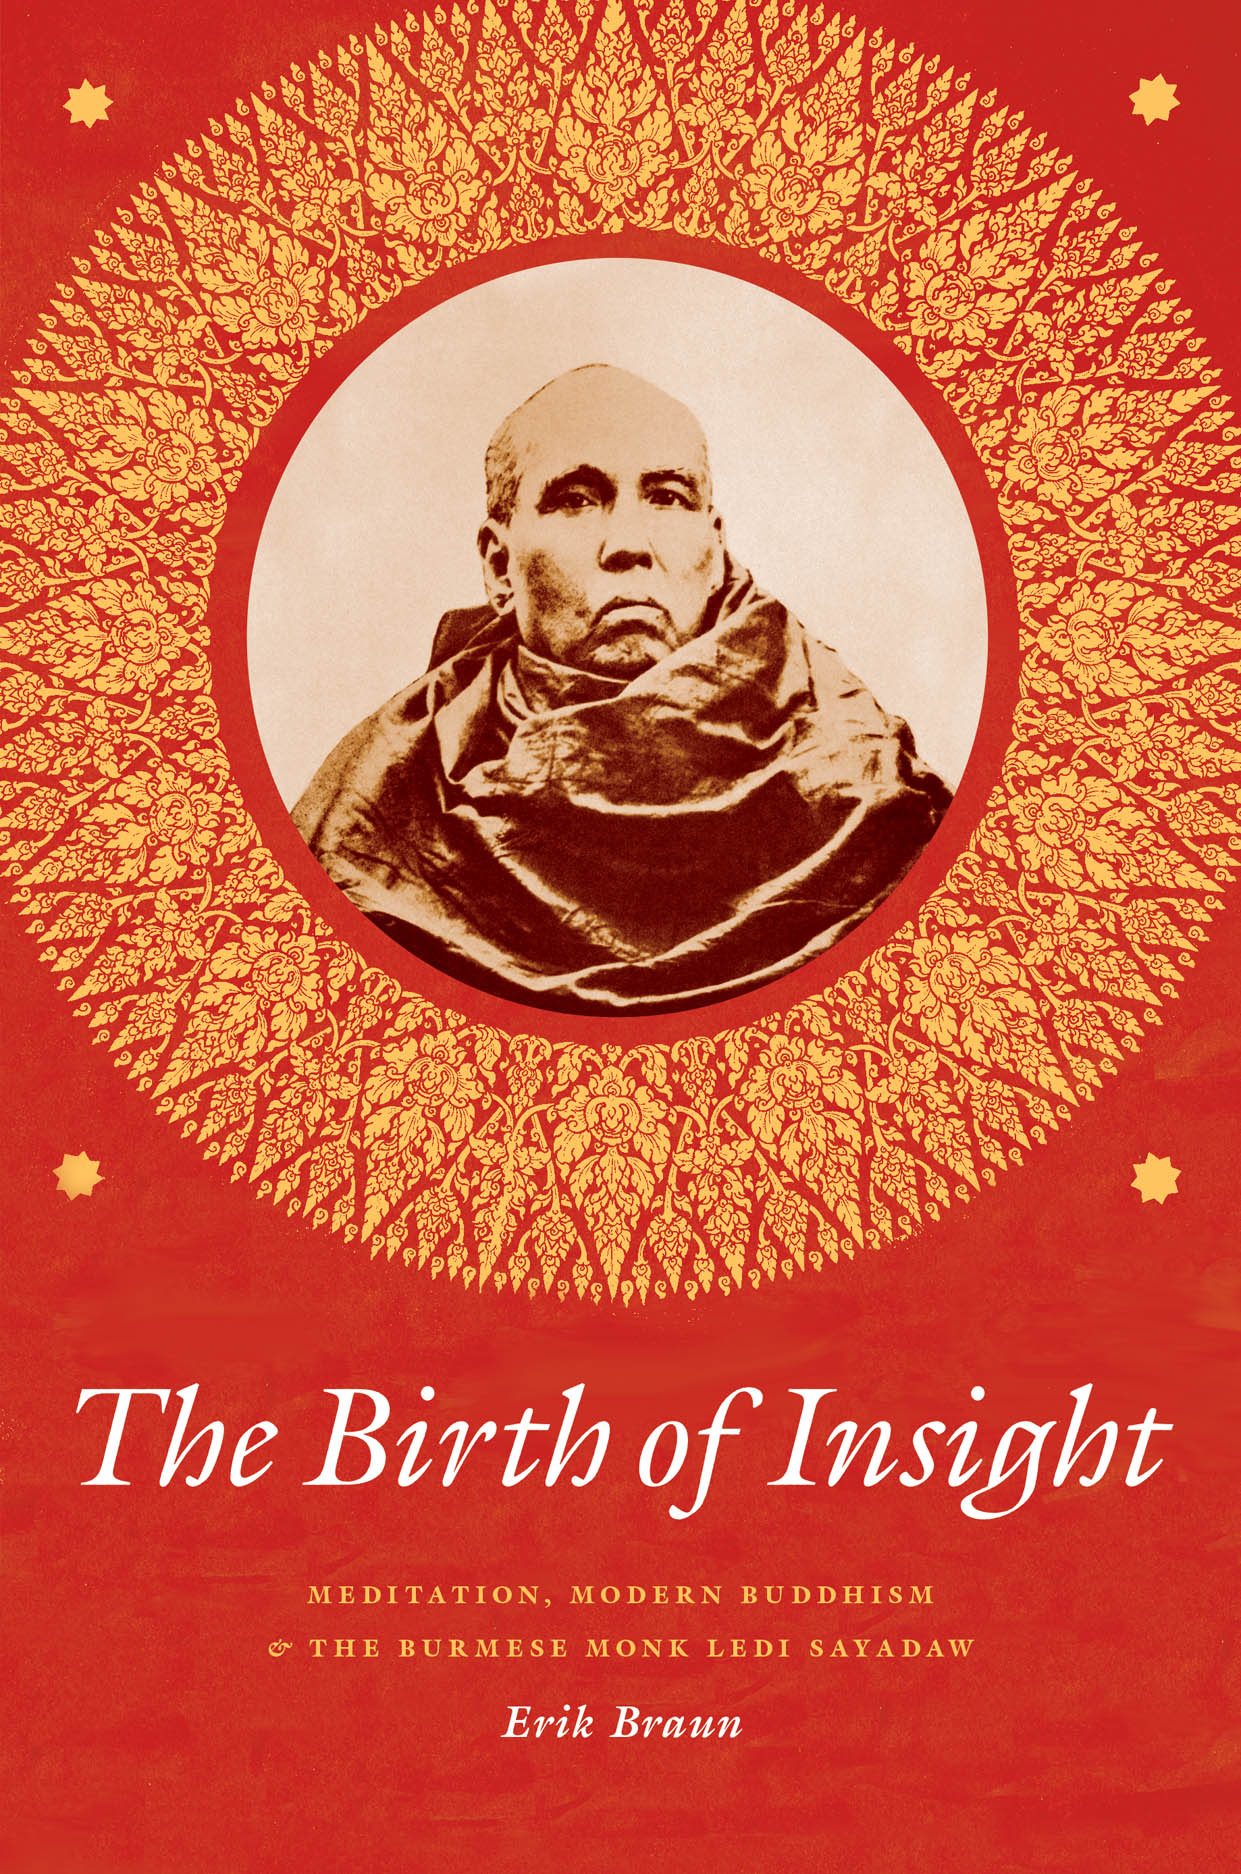 The Birth of Insight: Meditation, Modern Buddhism, and the Burmese Monk Ledi Sayadaw